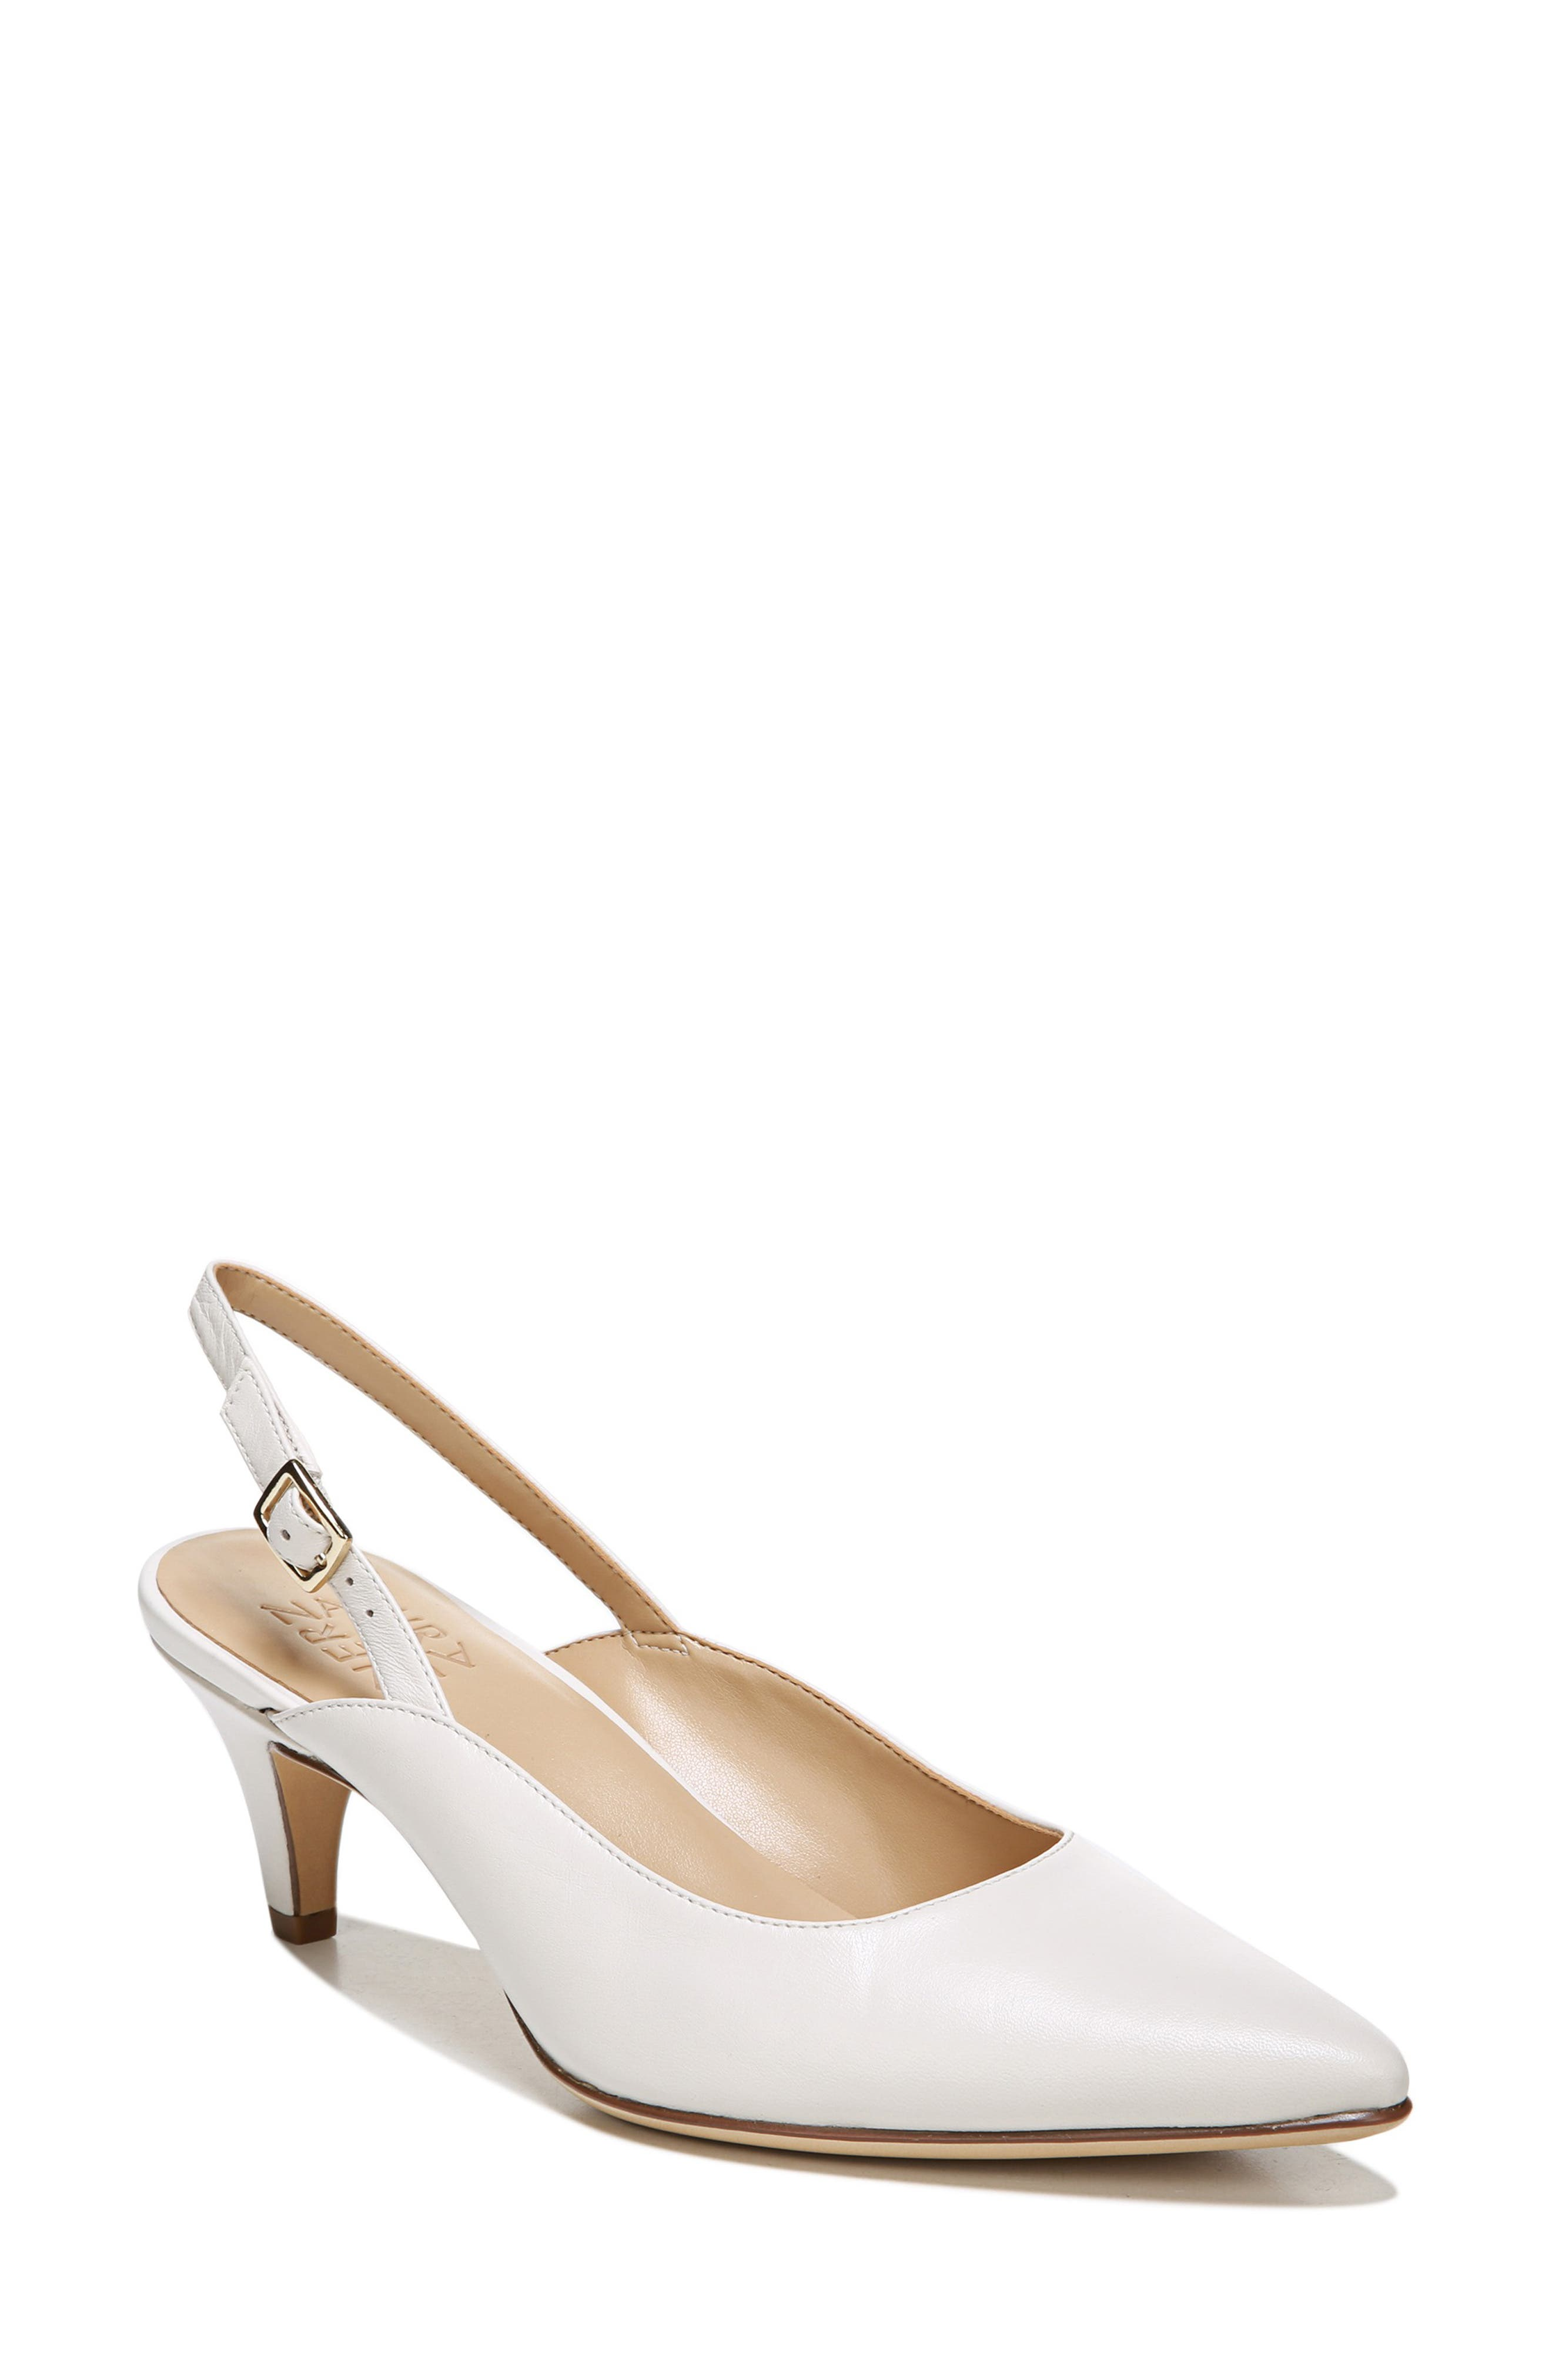 Naturalizer Baylee Slingback Pump, White